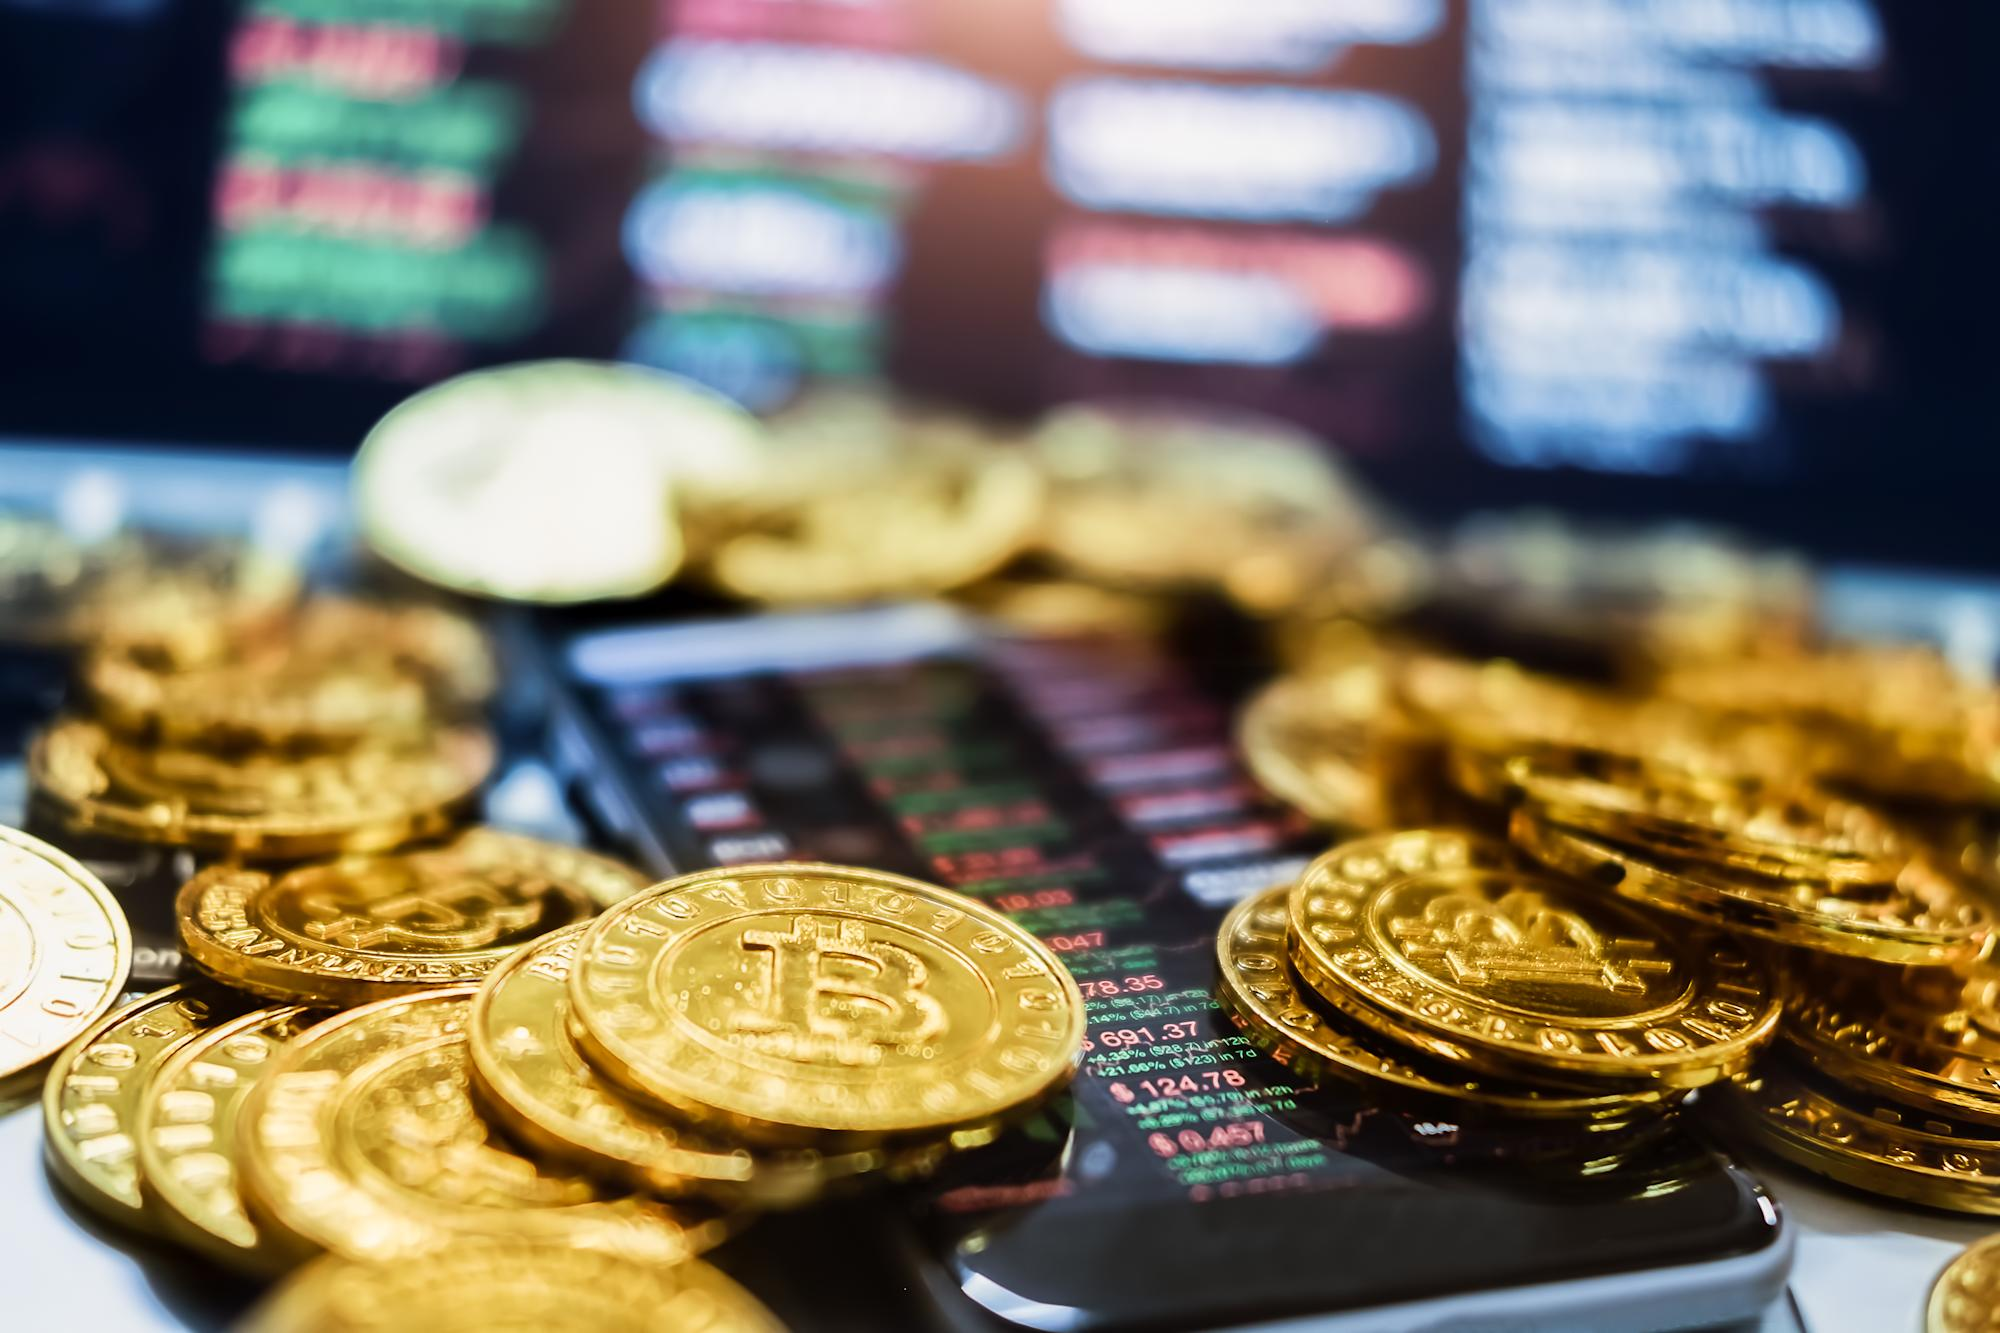 Hacker bitcoins 2021 nba most reputable online sports betting sites